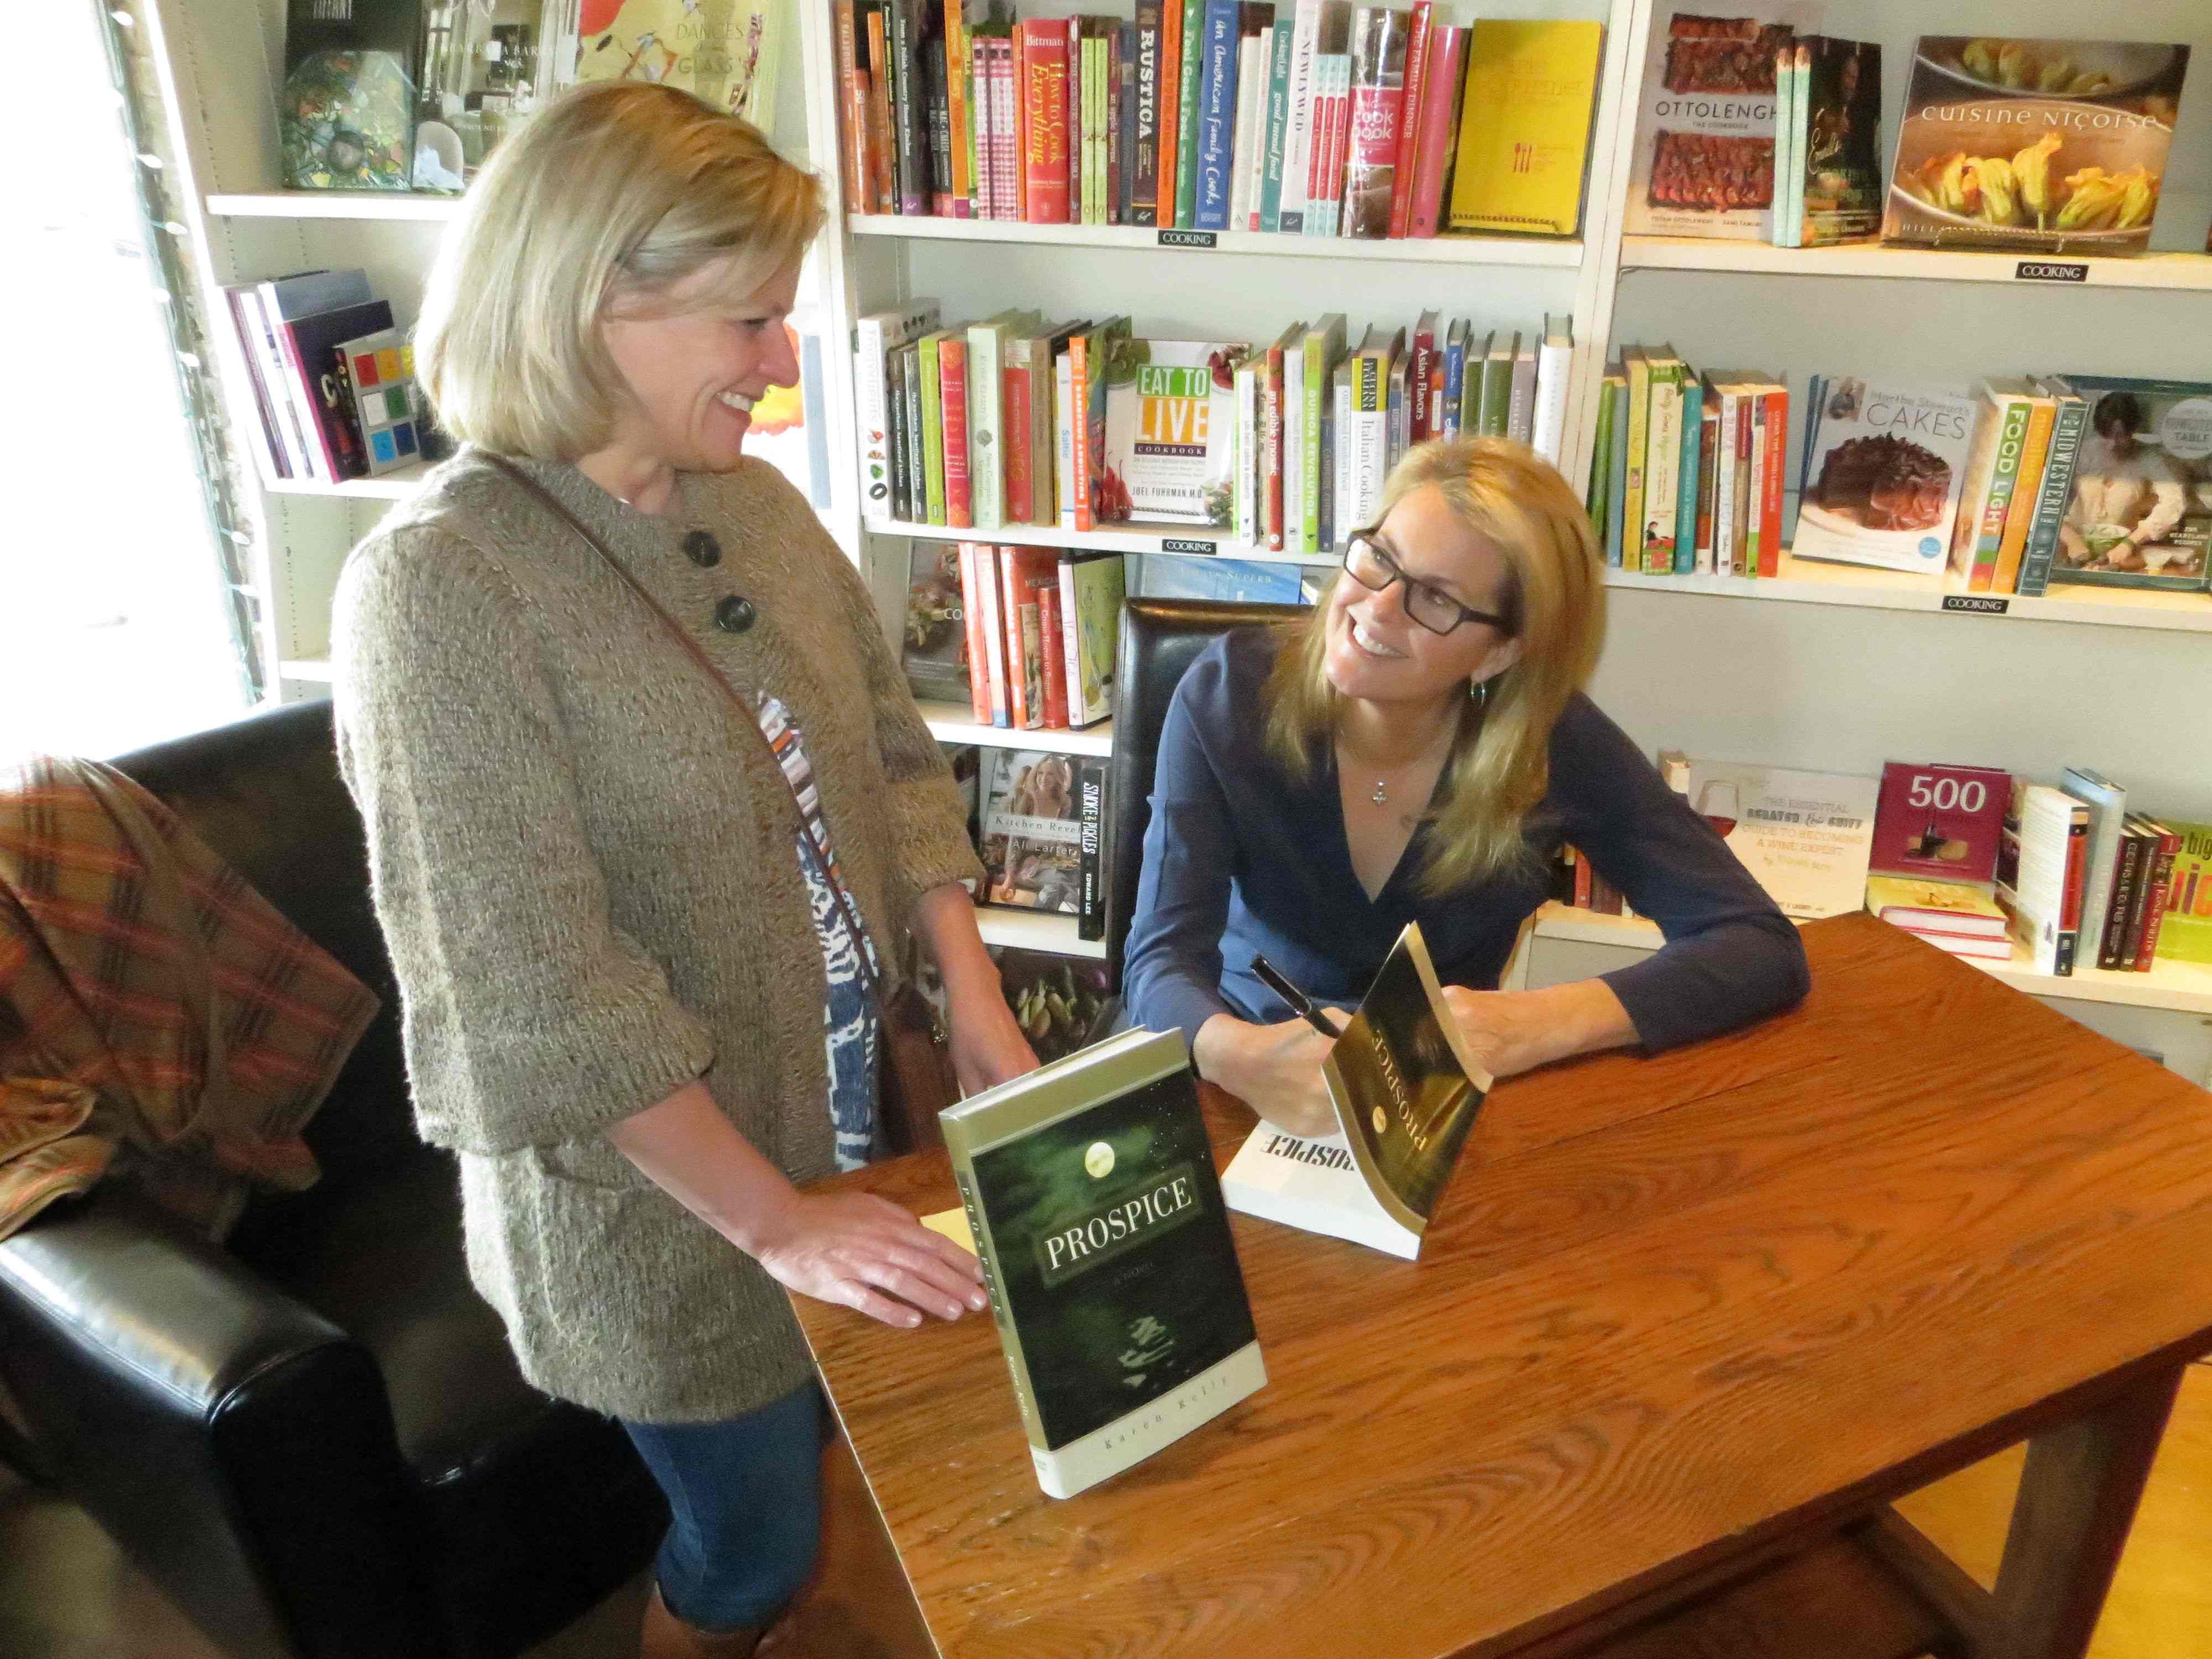 Karen Kelly Author Prospice Signs Books At The Bookcase